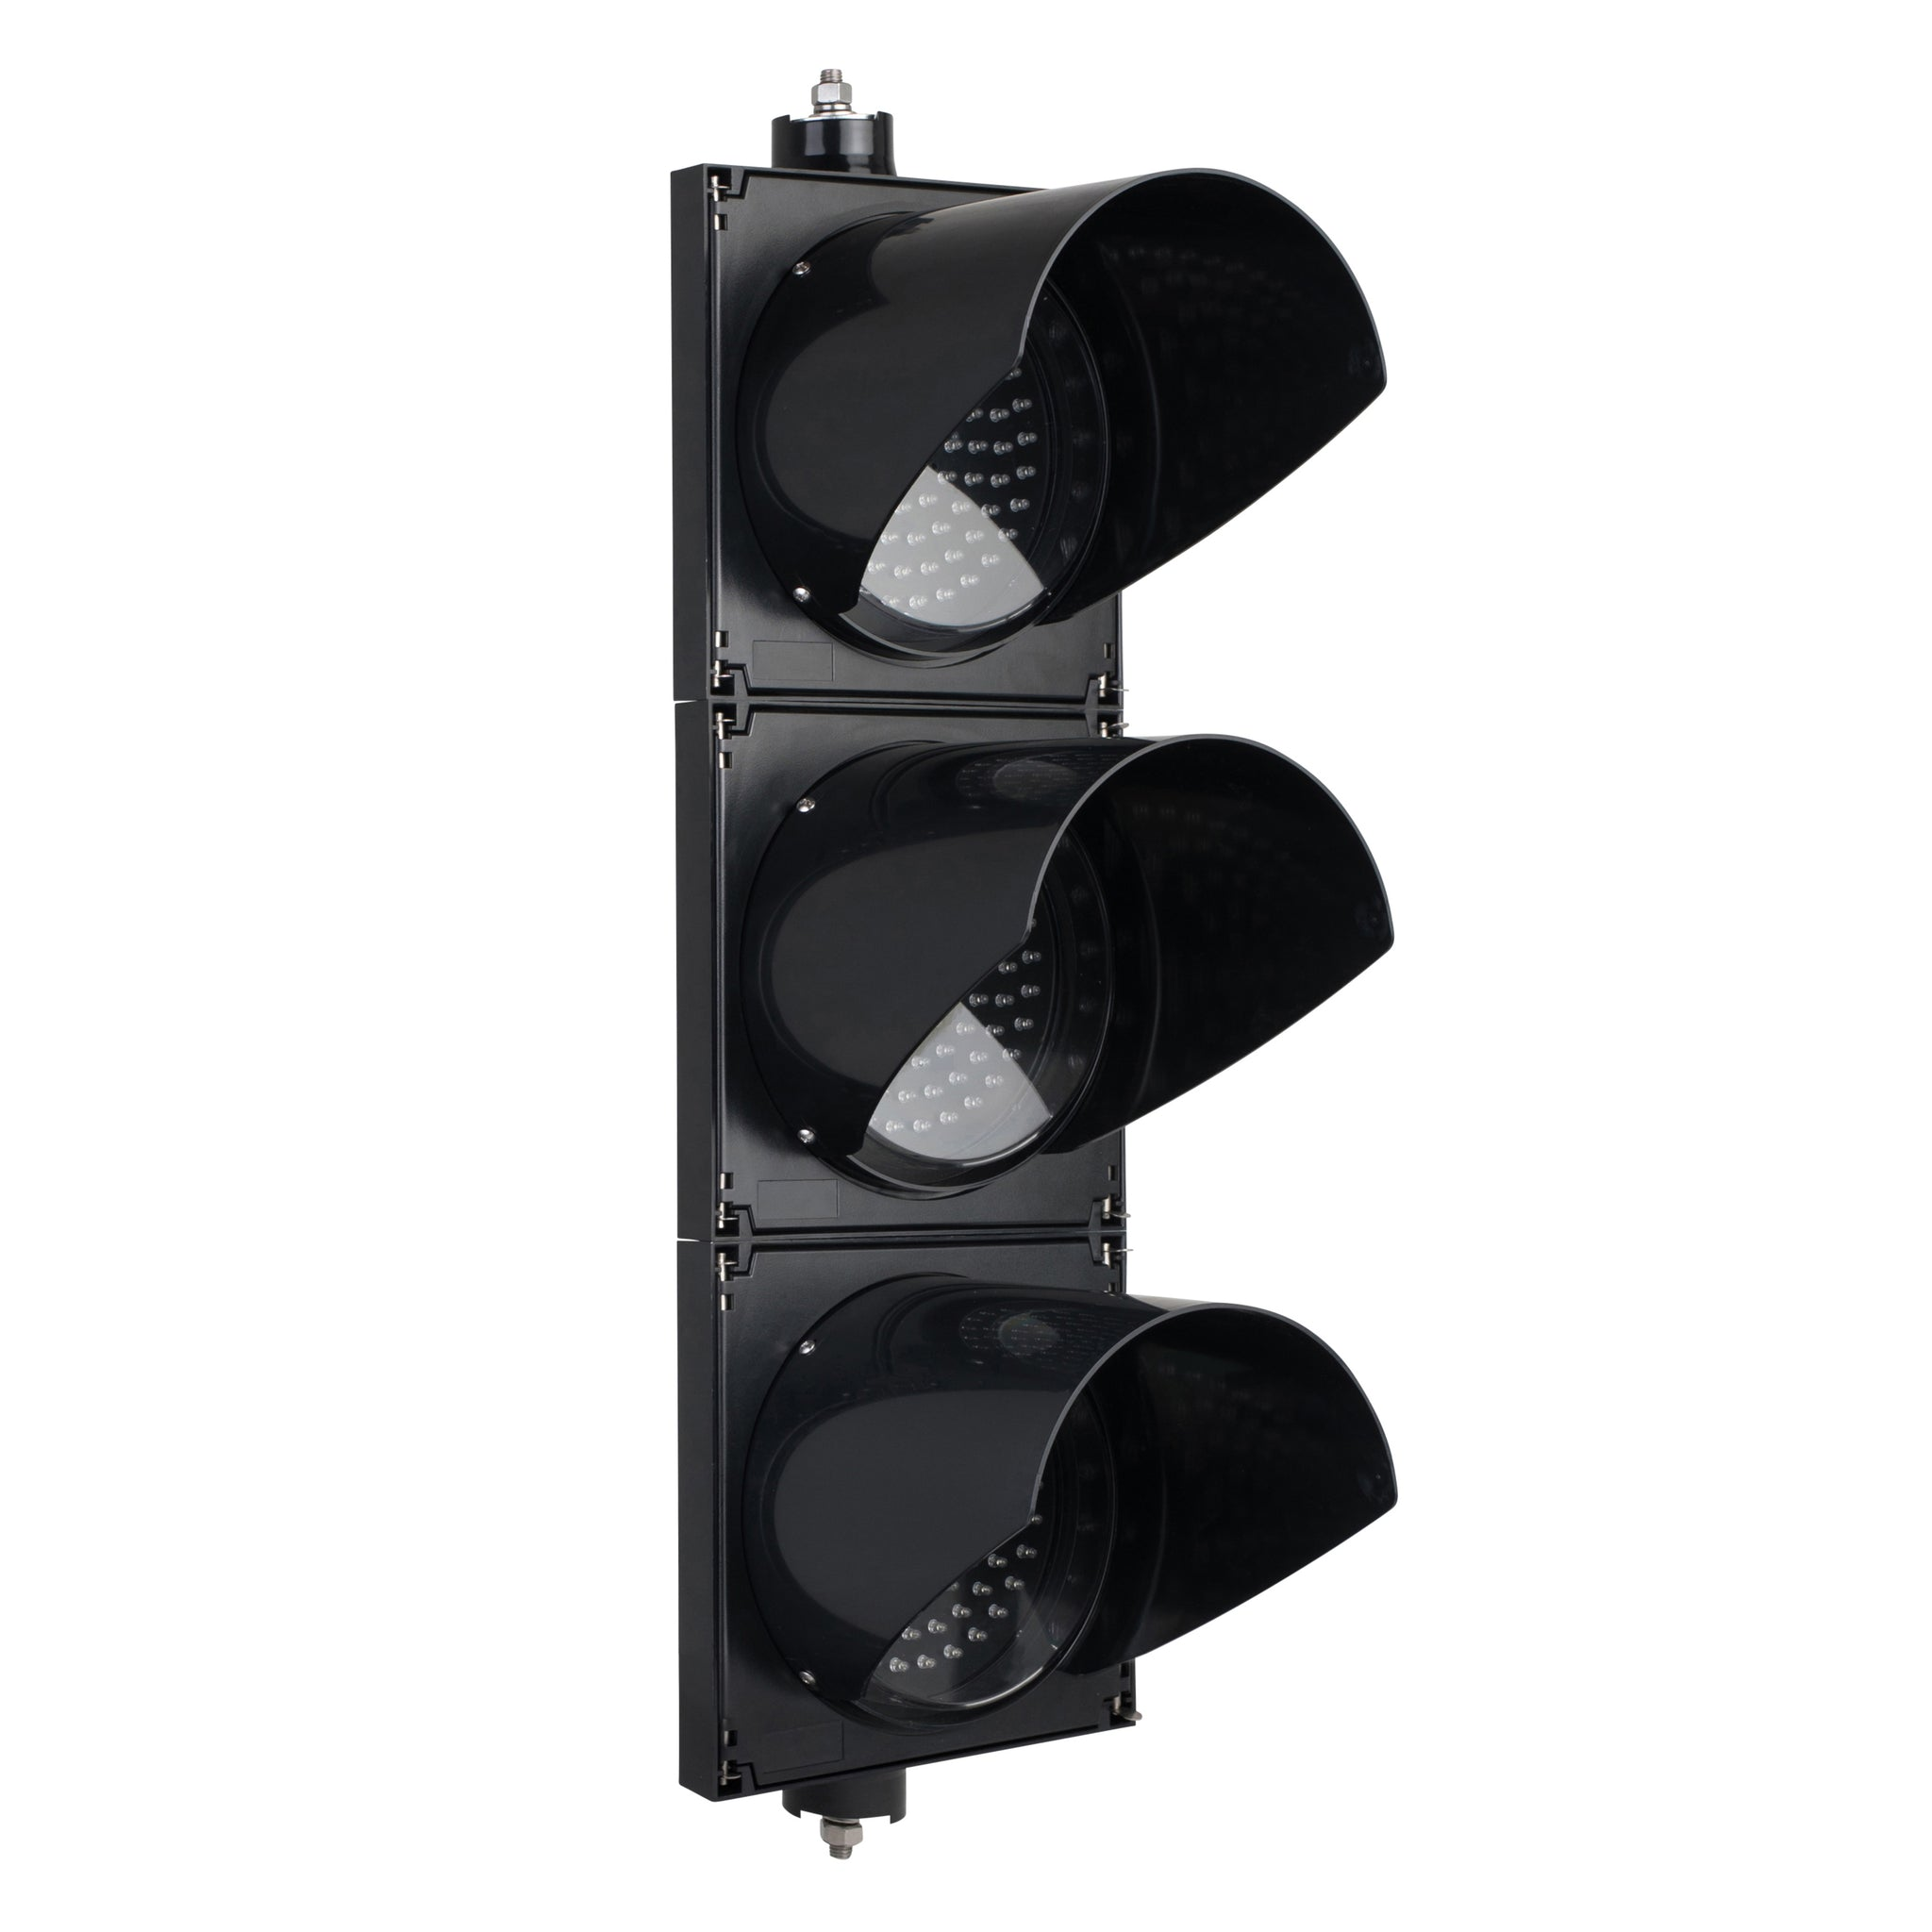 BNR 3 Aspect 200mm LED Traffic Lights 12-24VDC or 85-265VAC - Arrows and Colours